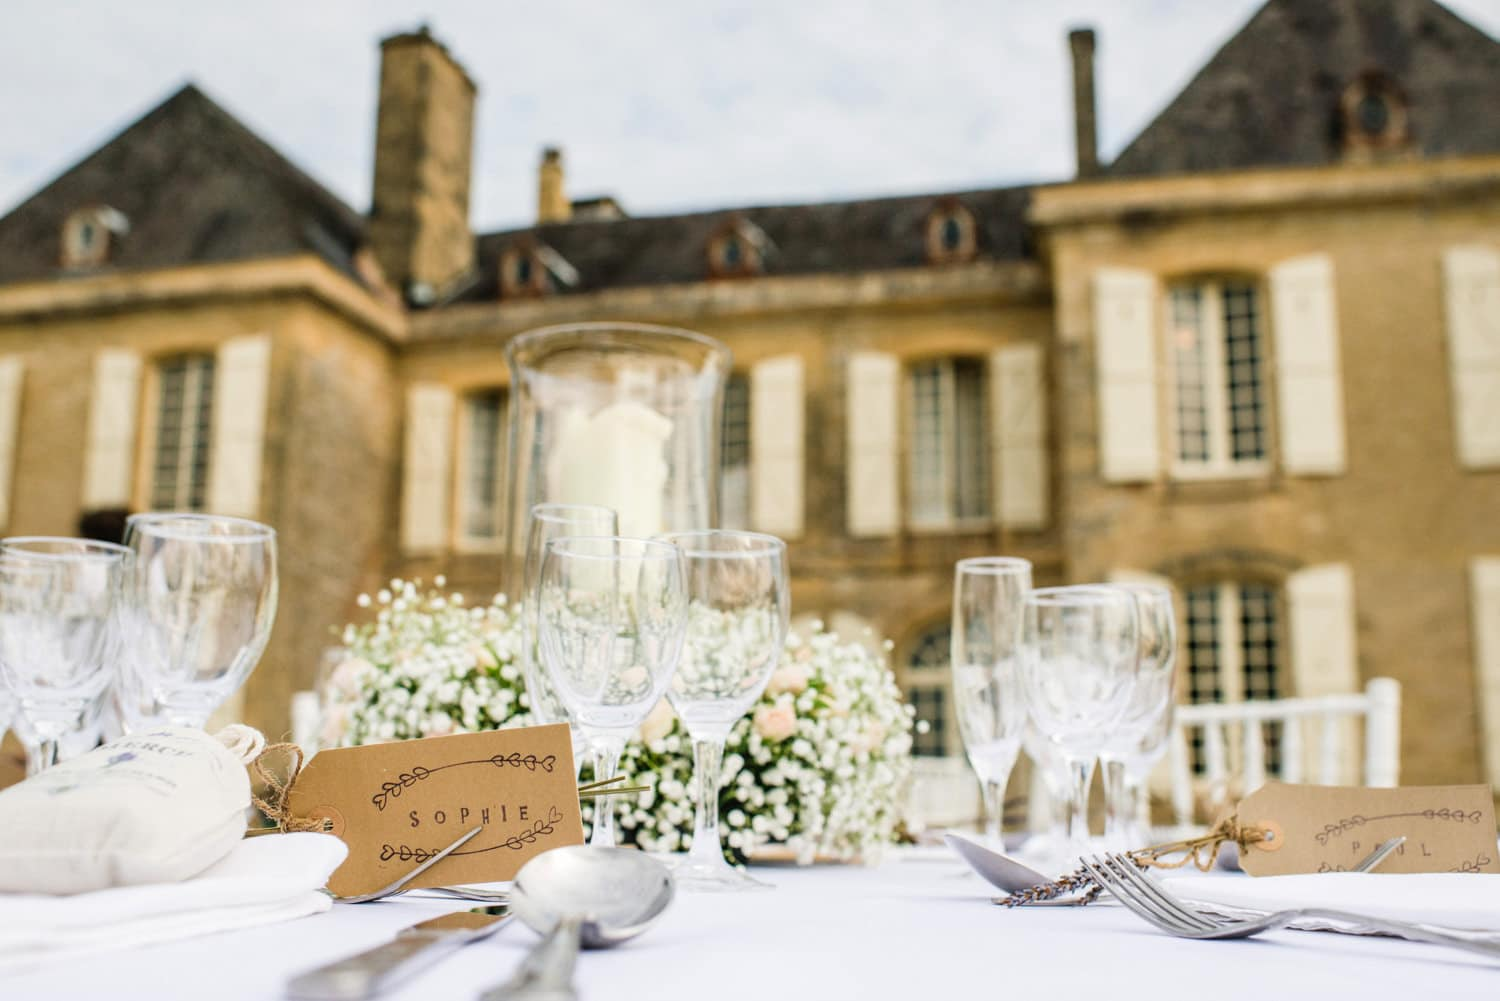 table setting at Chateau de Lacoste France